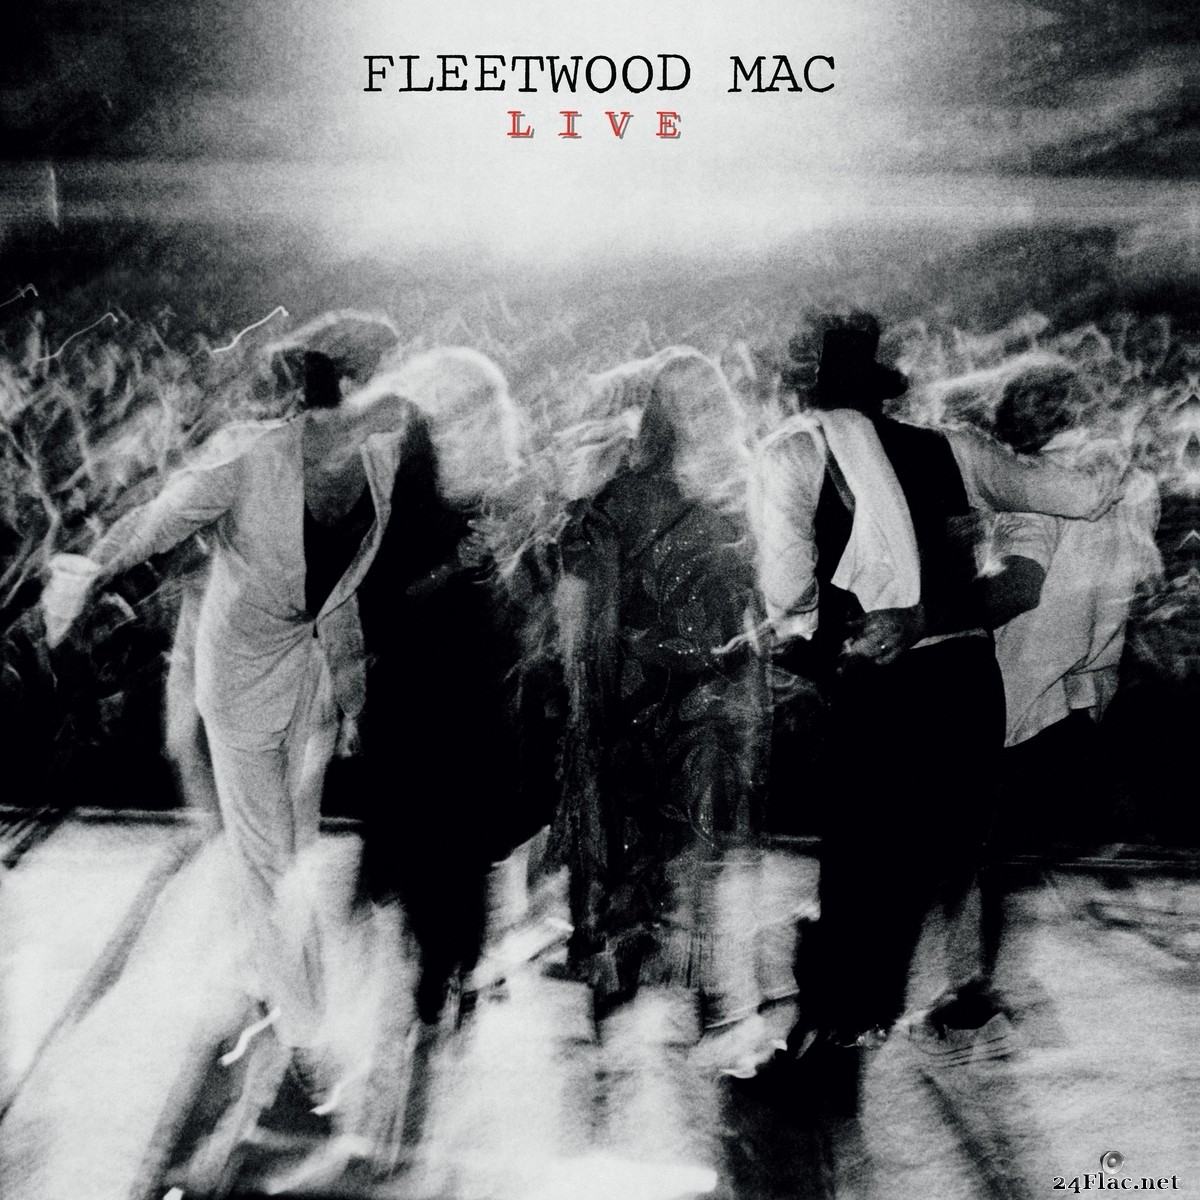 Fleetwood Mac - Live (Deluxe Edition) (2021) FLAC